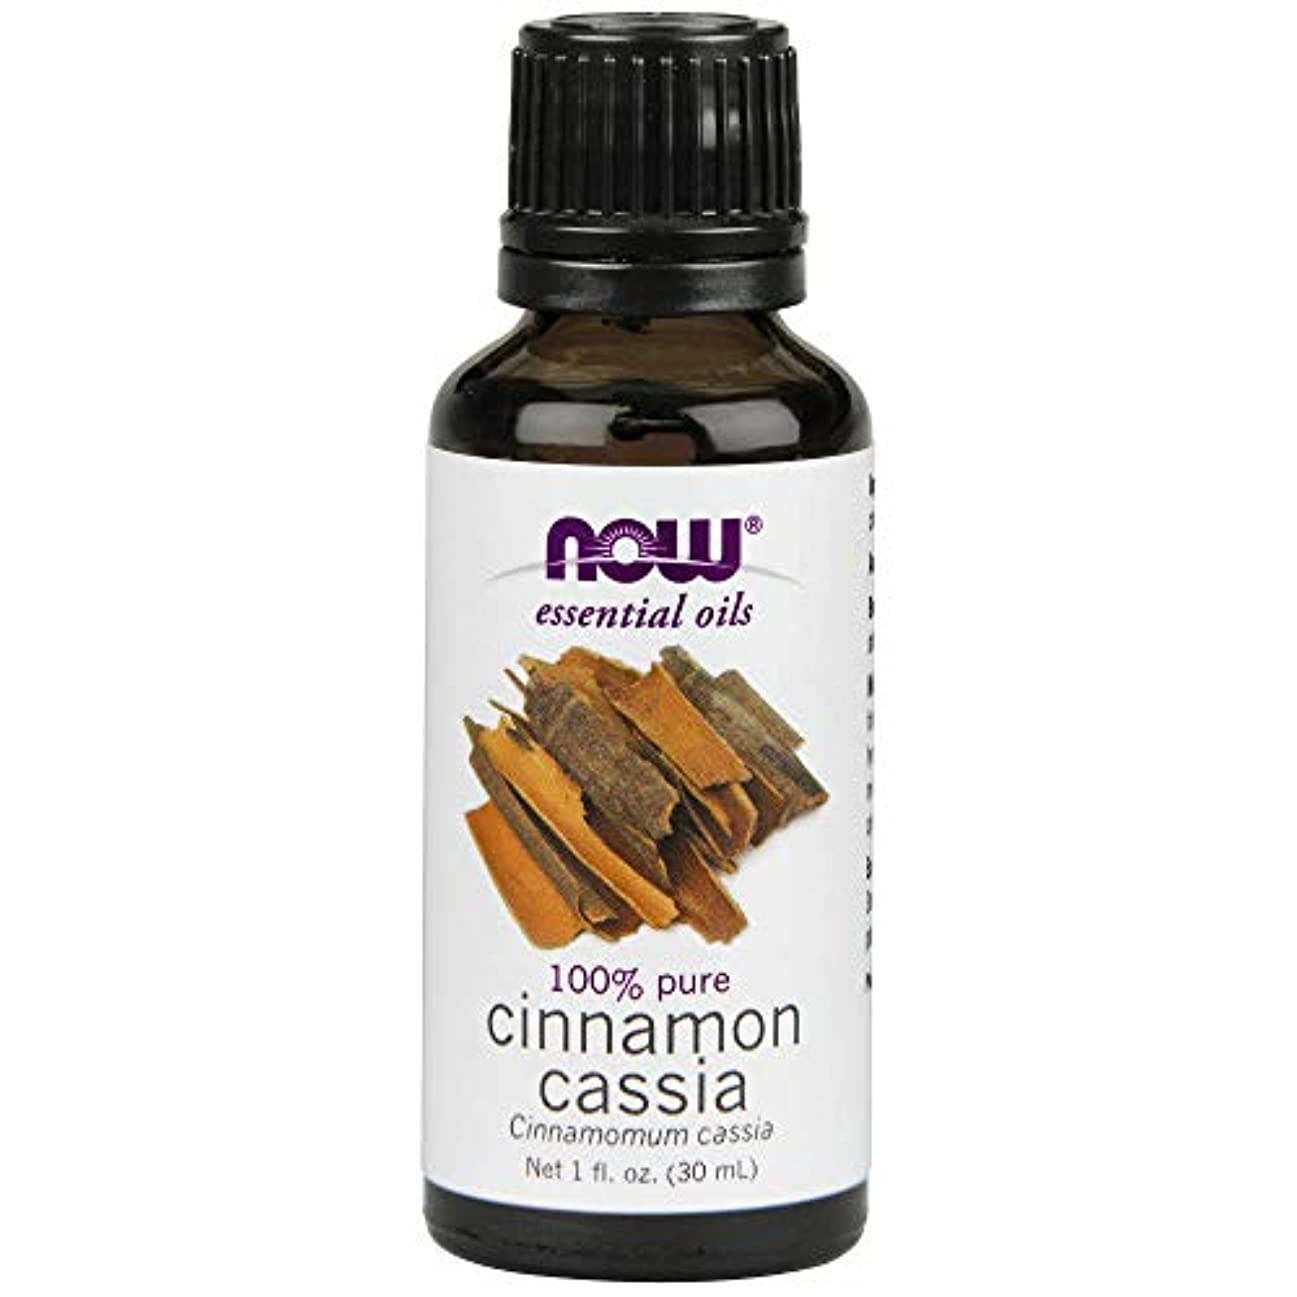 隠そよ風呪いNow - Cinnamon Cassia Oil 100% Pure 1 oz (30 ml) [並行輸入品]